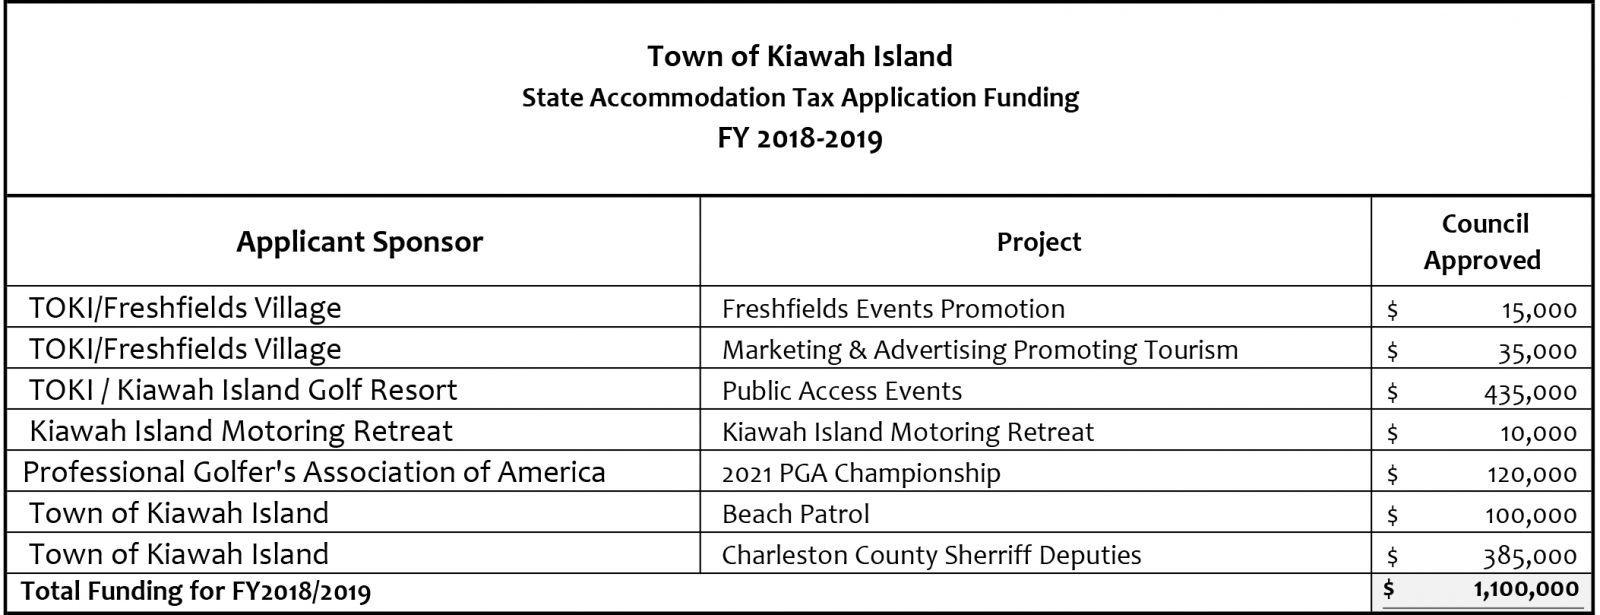 2018-2019 SATAX Approved Funding